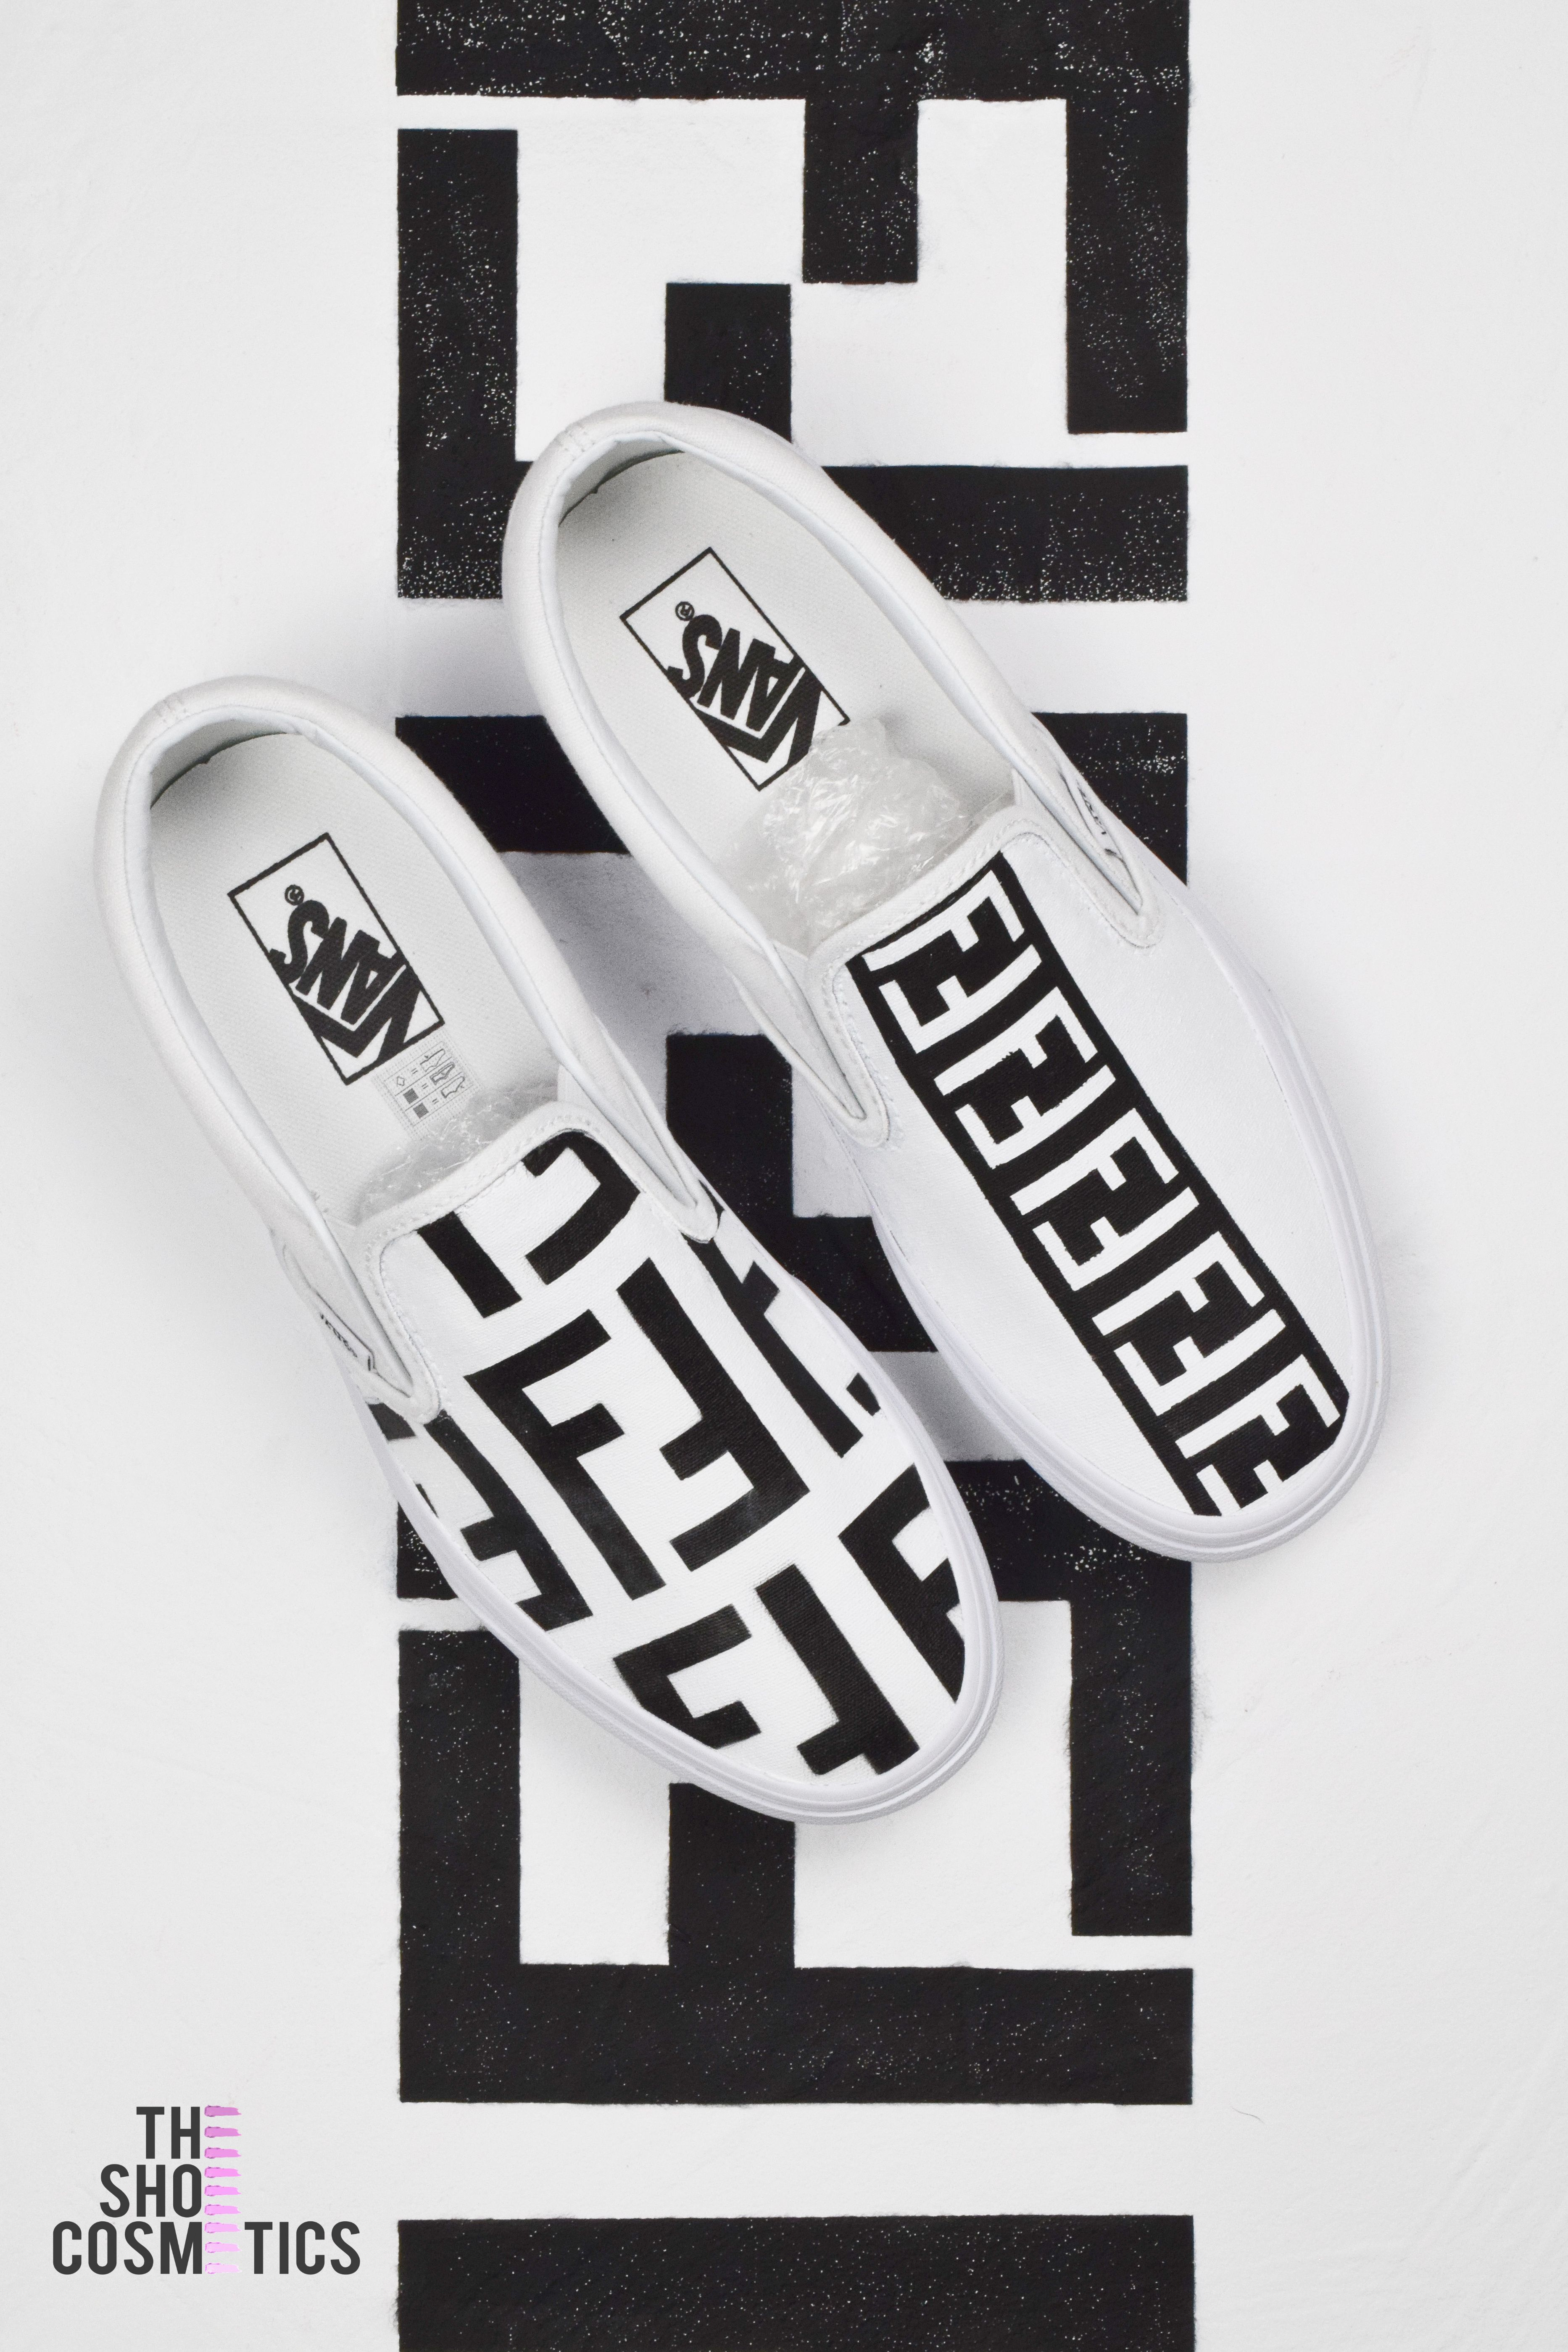 f4e07741f24b4e Introducing our new Vans slip on Fendi print painted canvas shoes. Looking  for customized Vans